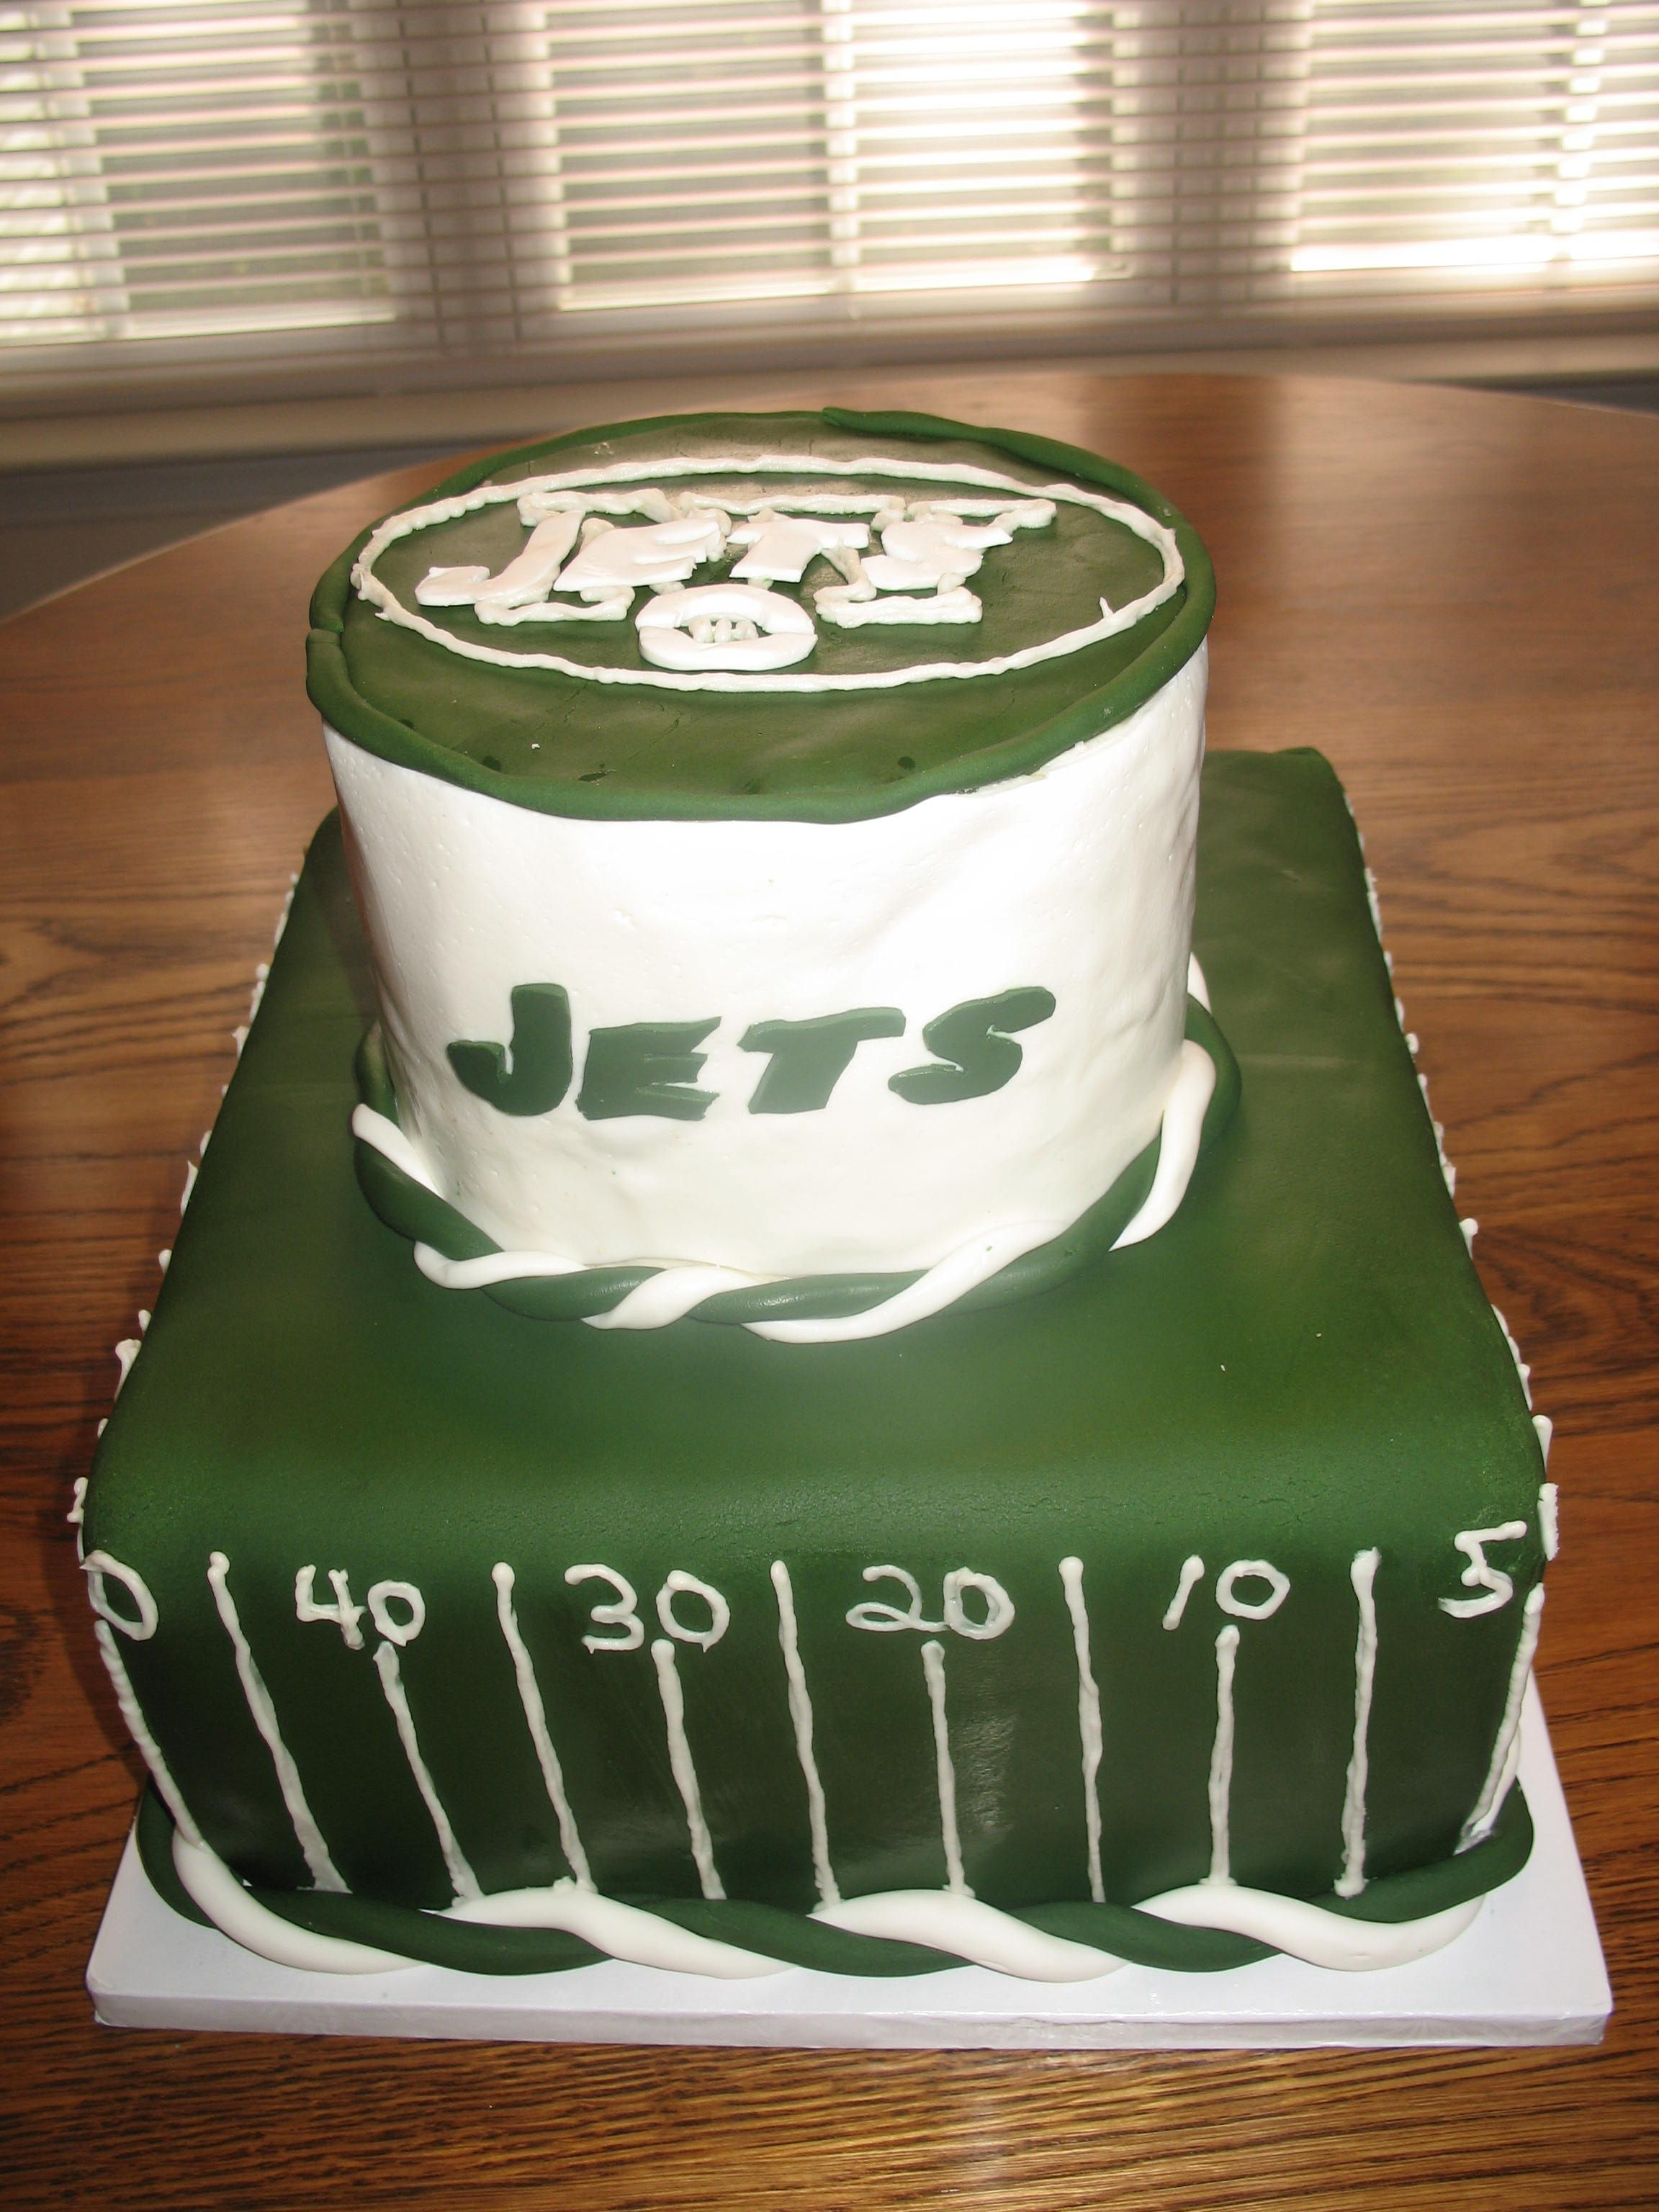 Ny Jets Cake Cheesecakeetcz Wedding Cakes Charlotte Nc